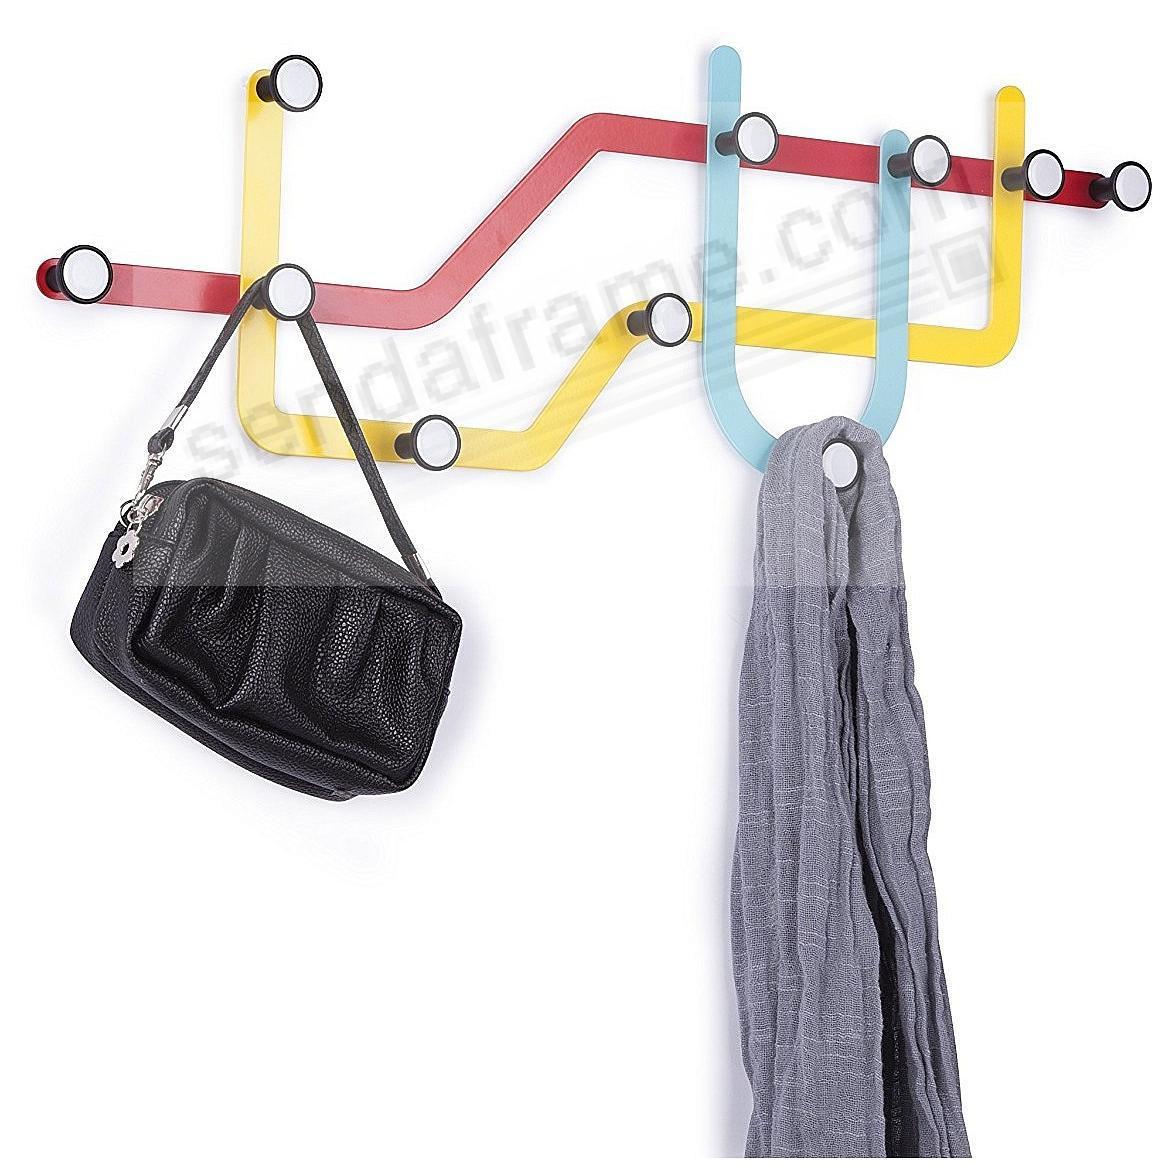 The Original SUBWAY MULTICOLORED Wall Hook by Umbra®